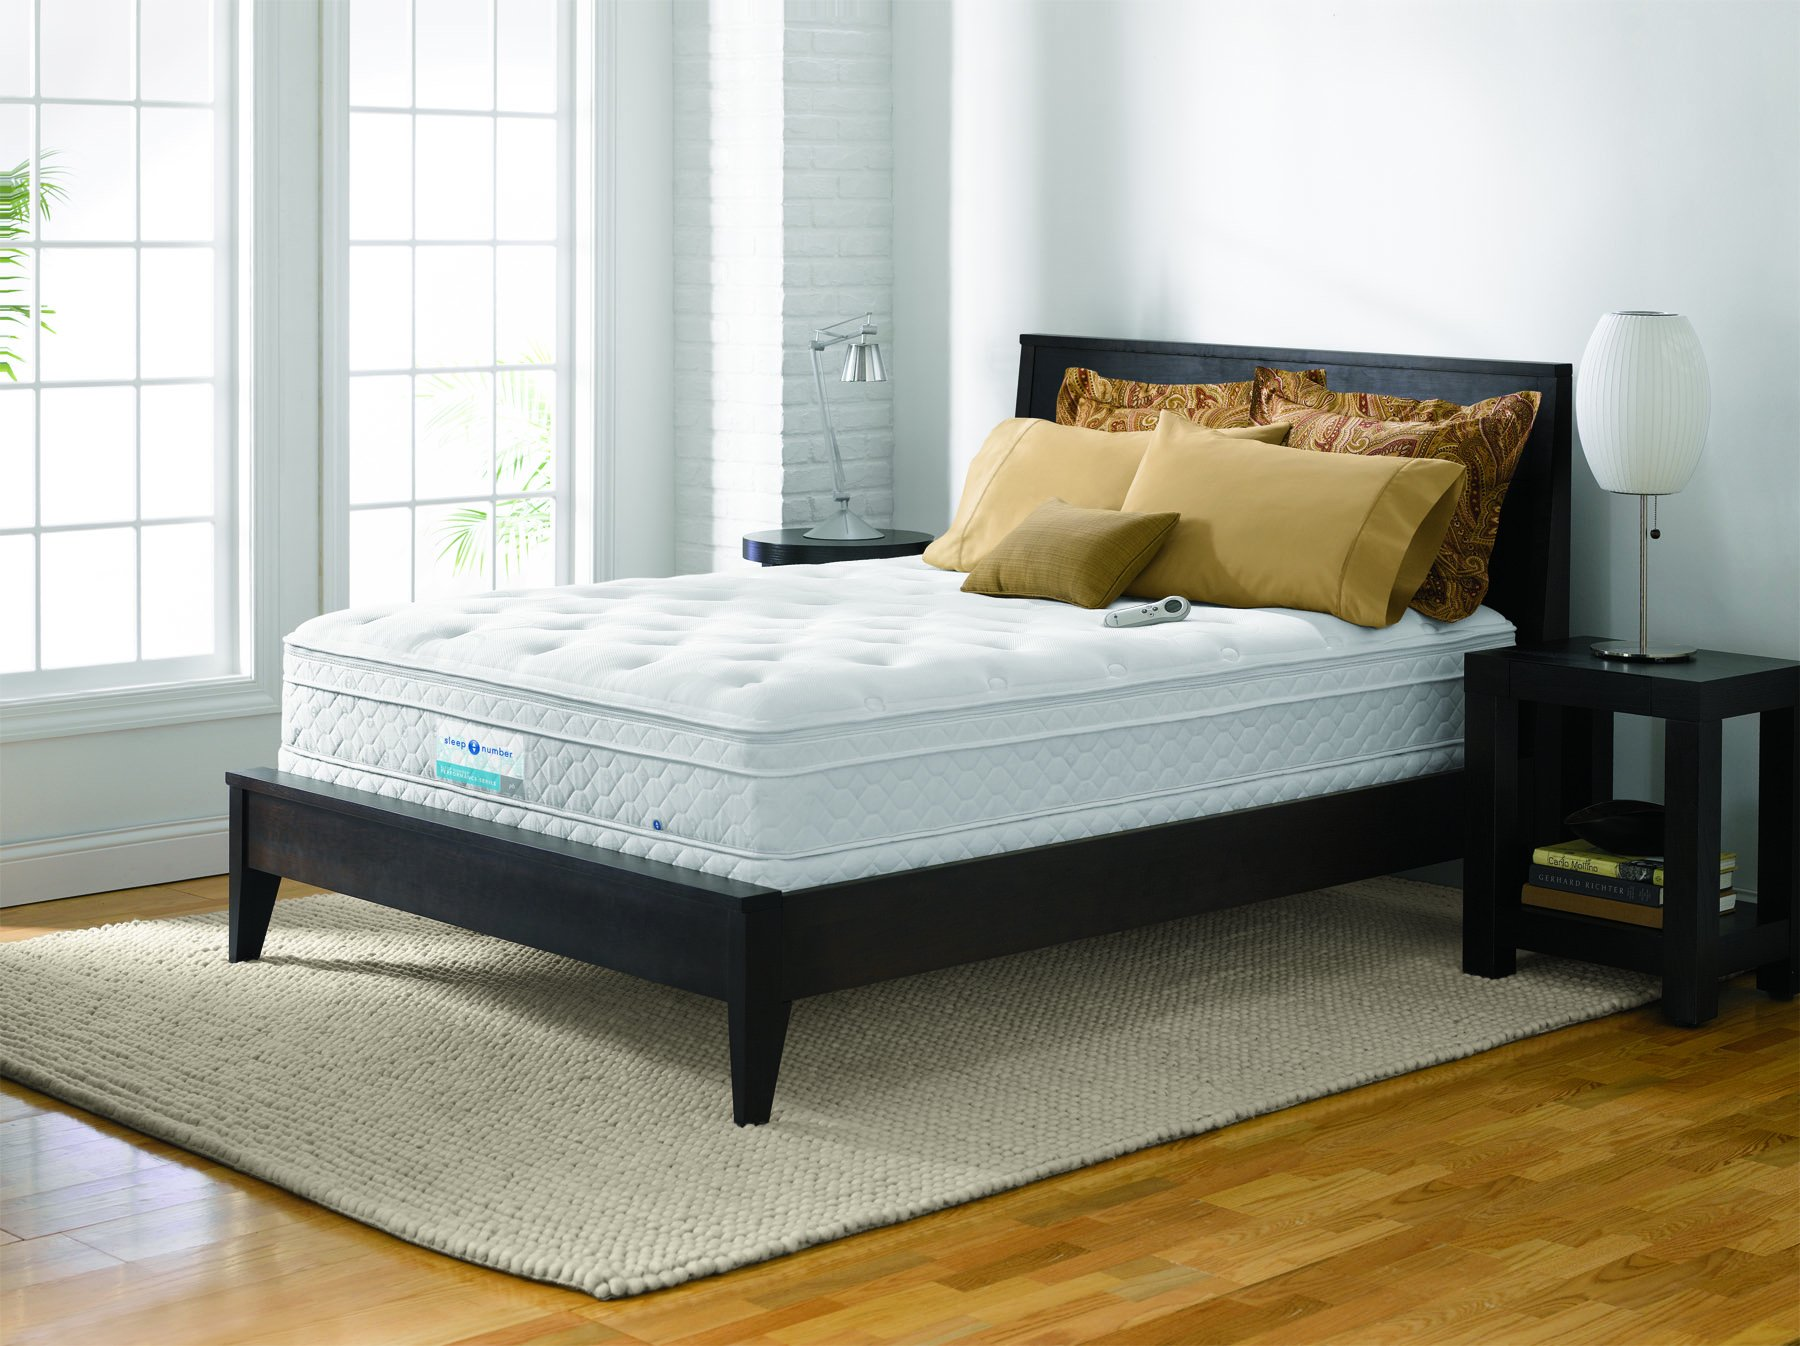 Serta Icomfort Reviews >> Sleep Number by Select Comfort - Mattress Reviews ...